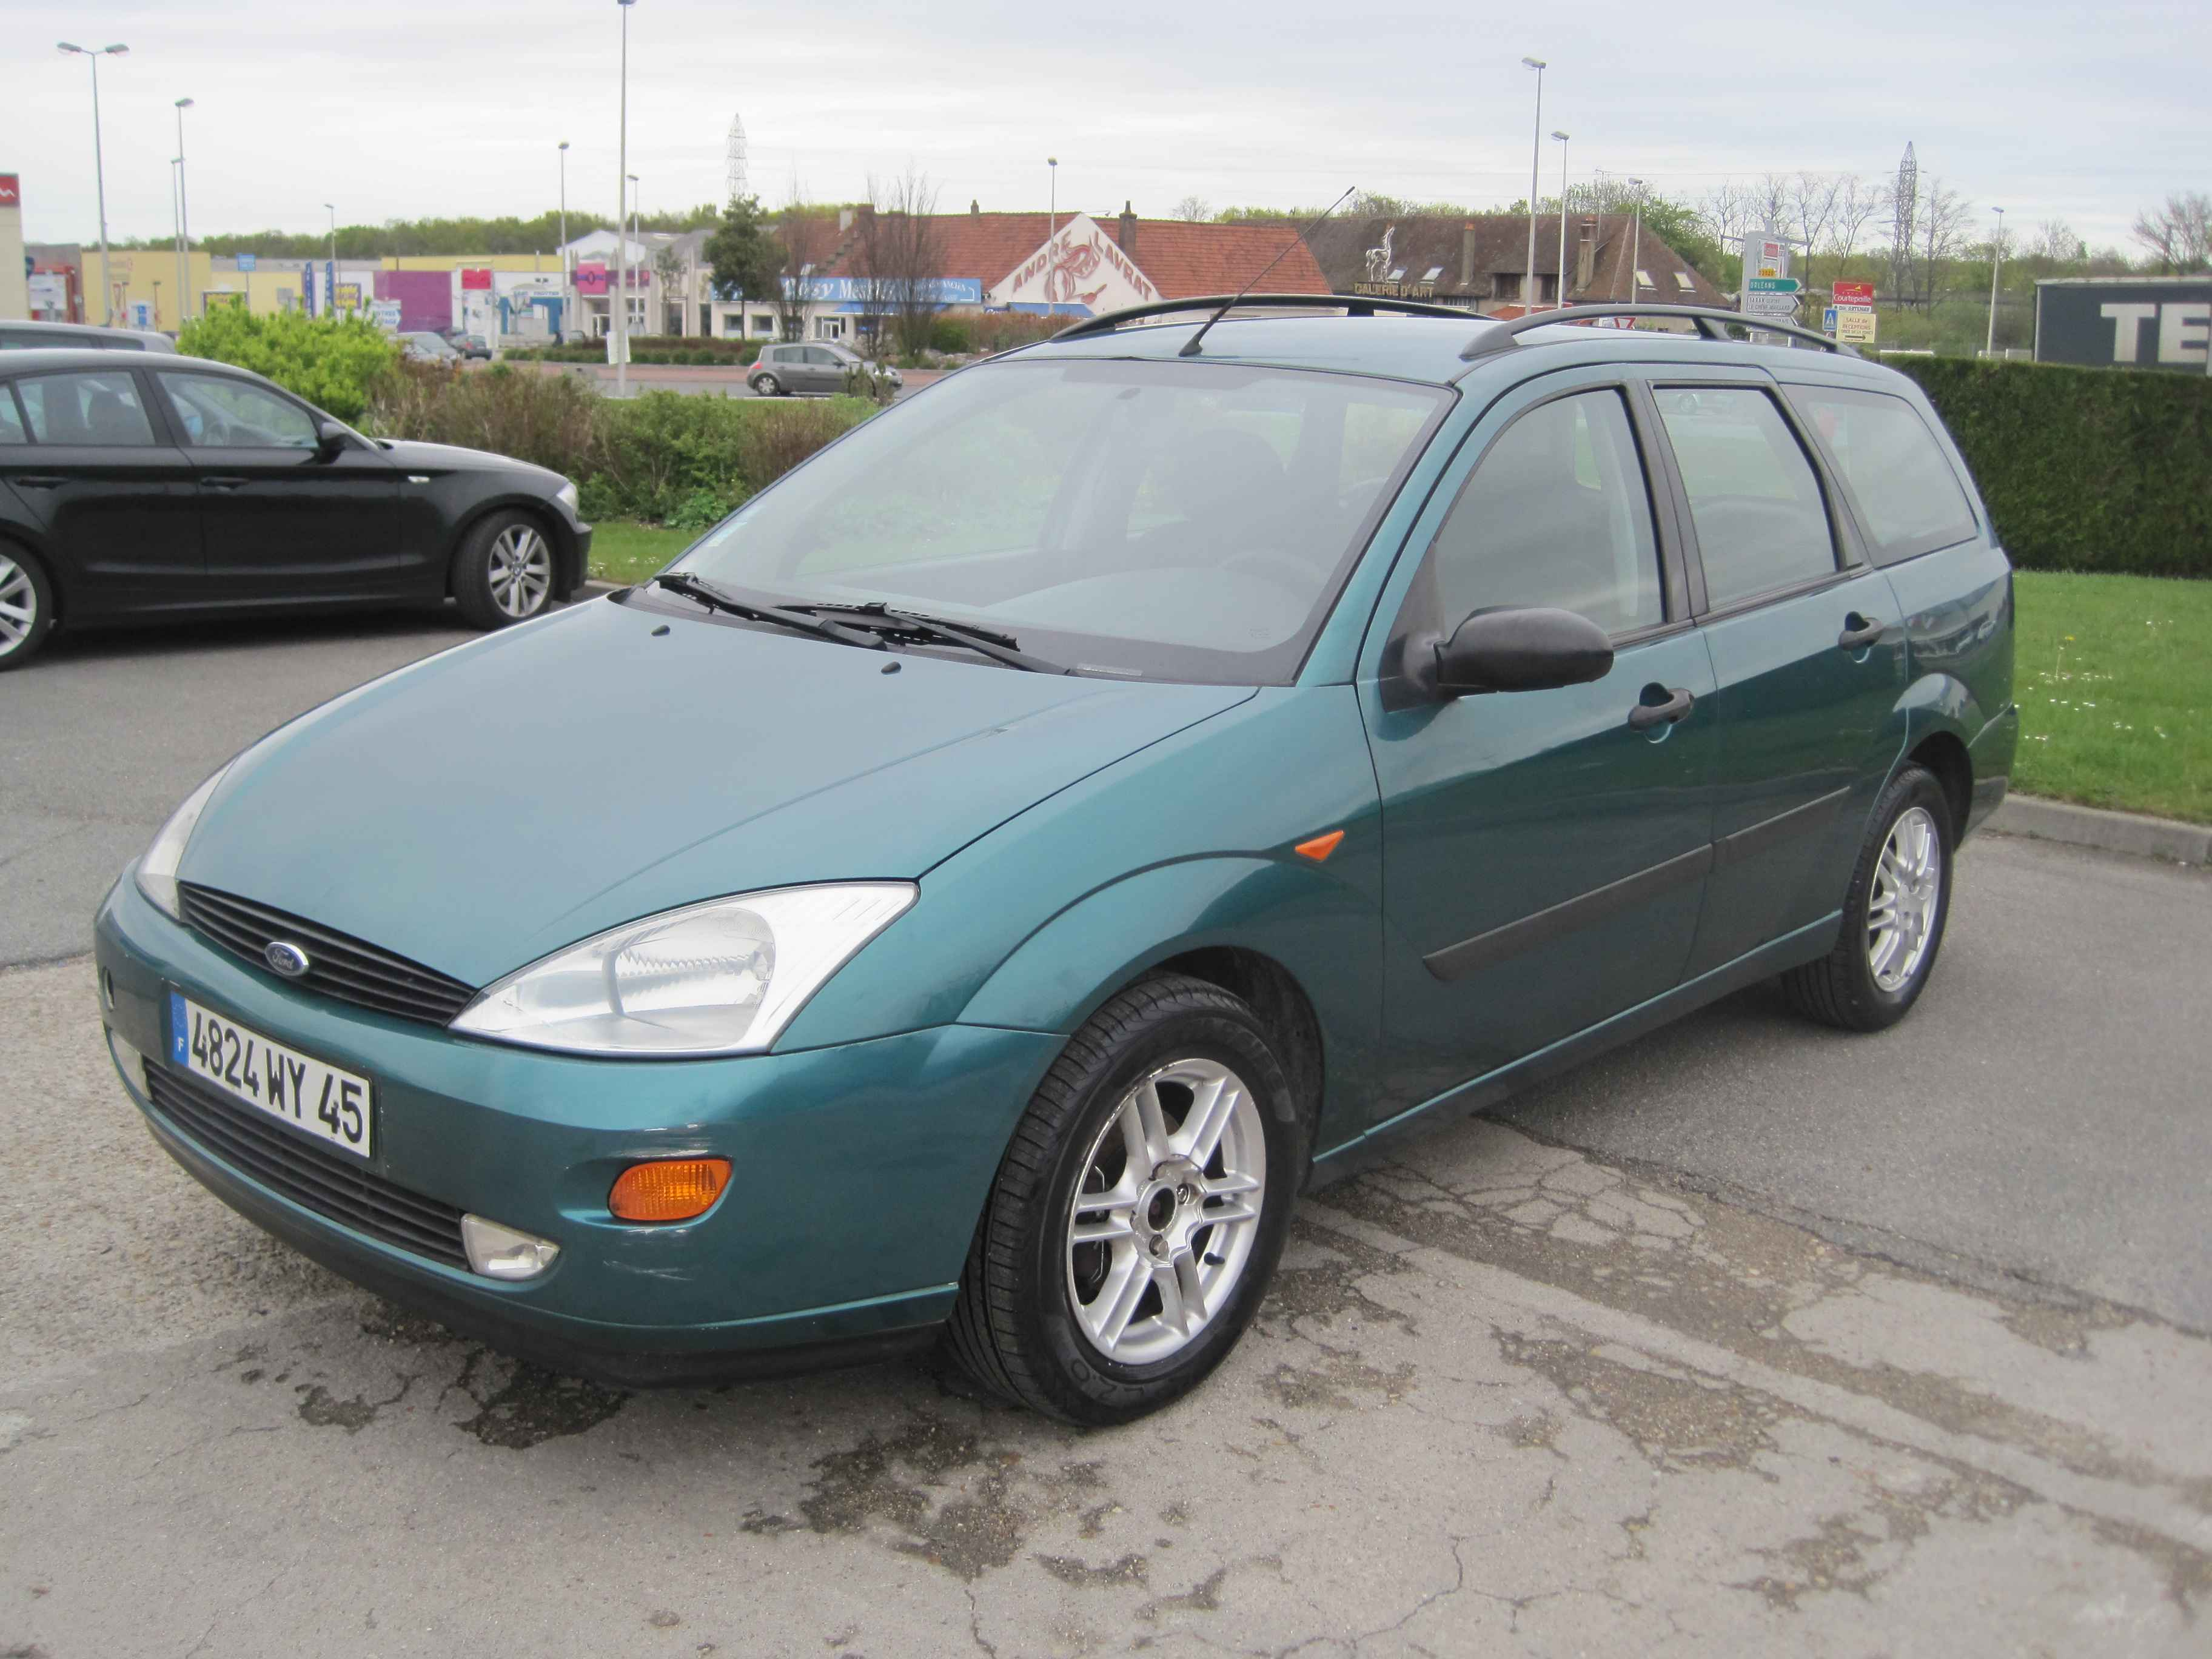 ford focus 1 8 1997 technical specifications interior and exterior photo. Black Bedroom Furniture Sets. Home Design Ideas